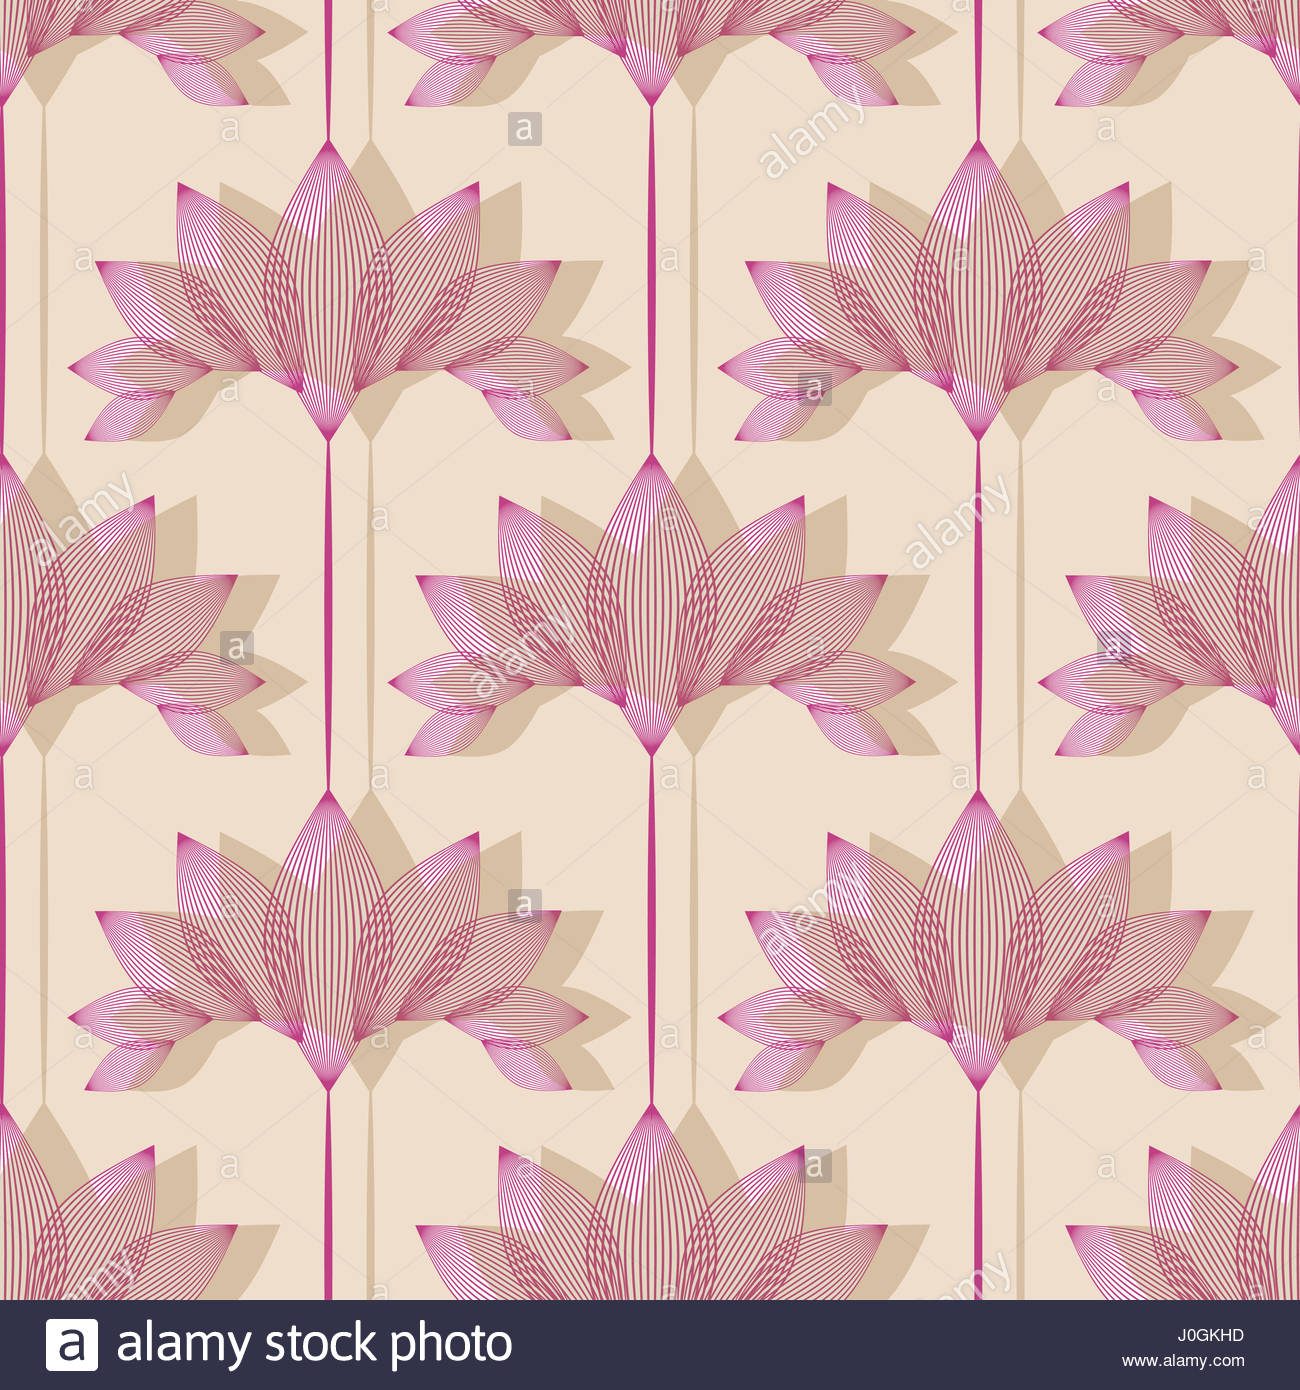 Vintage Style Floral Wallpaper With Lotus Pattern In Ivory And